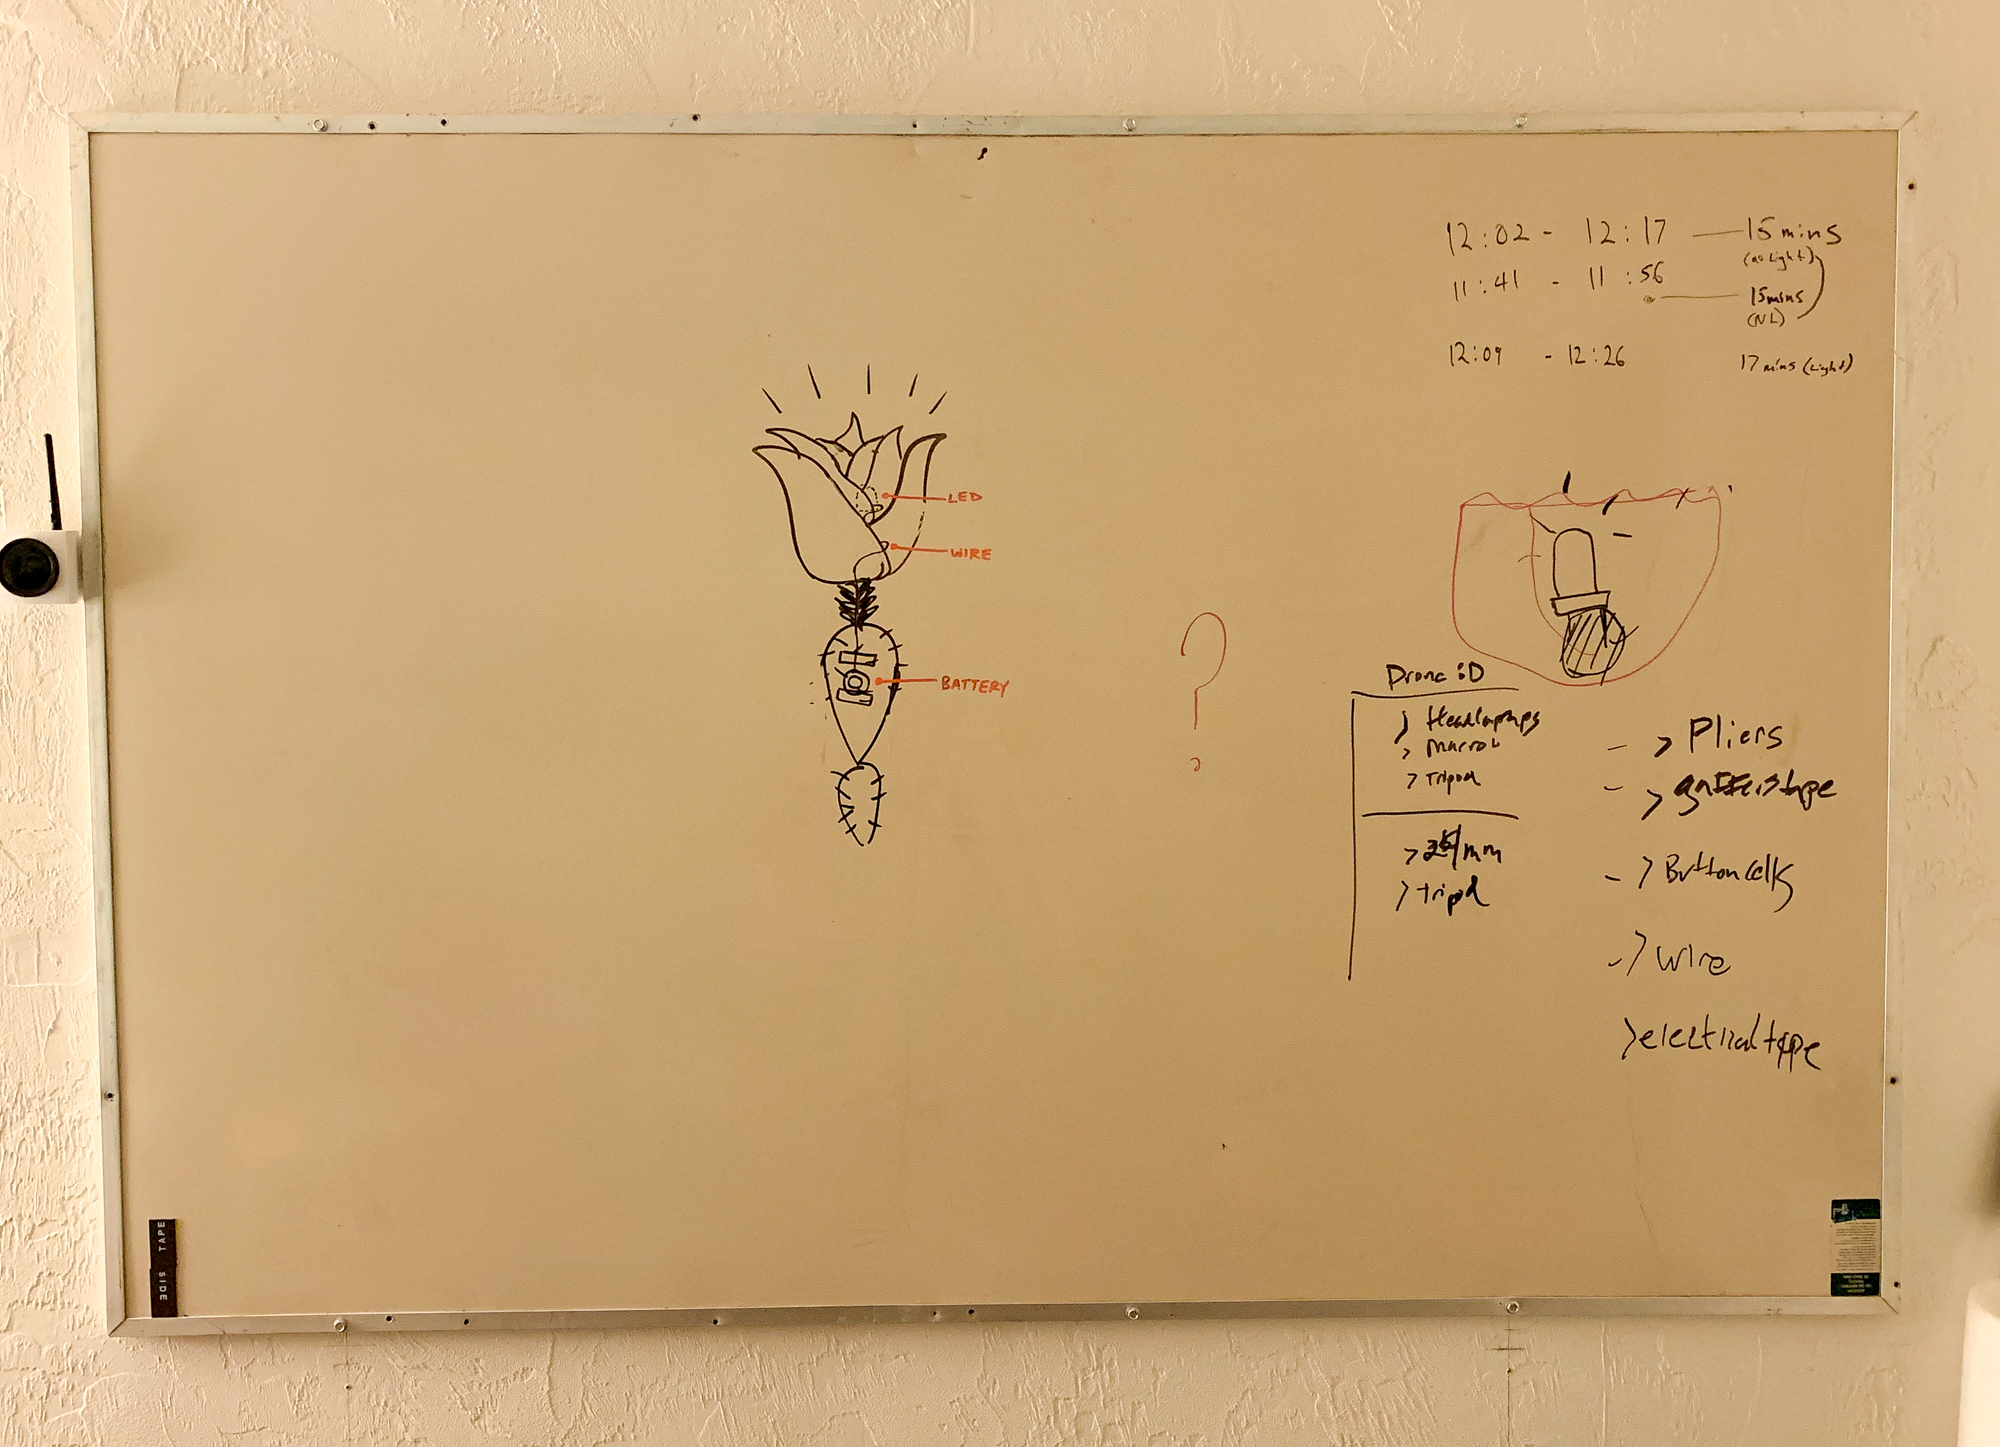 Project blueprints sketched on Alex's whiteboard during our weekly meeting last Thursday.